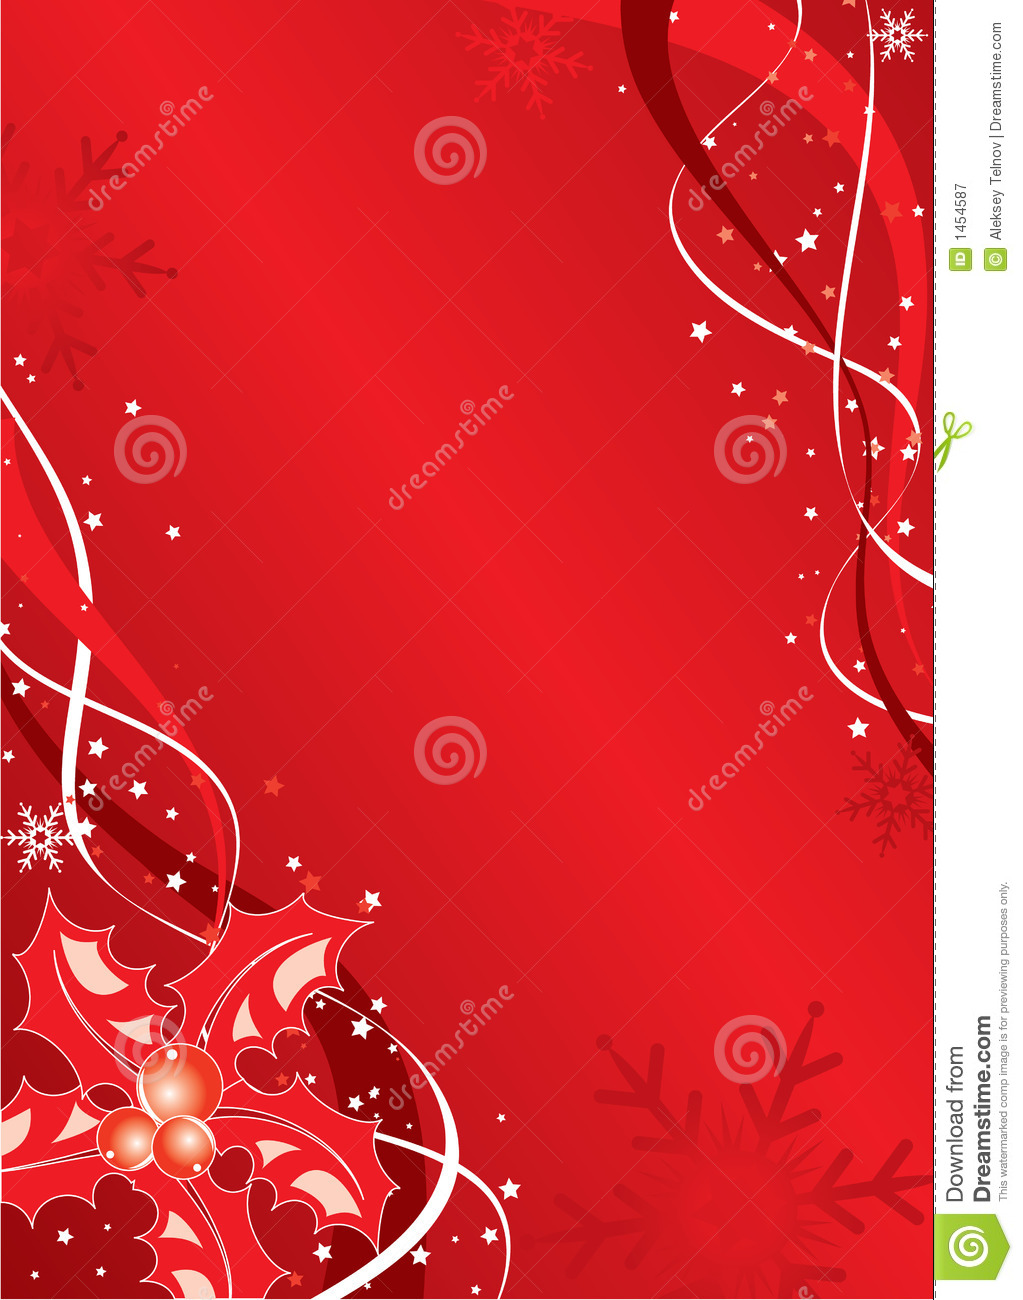 Christmas Background With Mistletoe And Snowflakes Vector